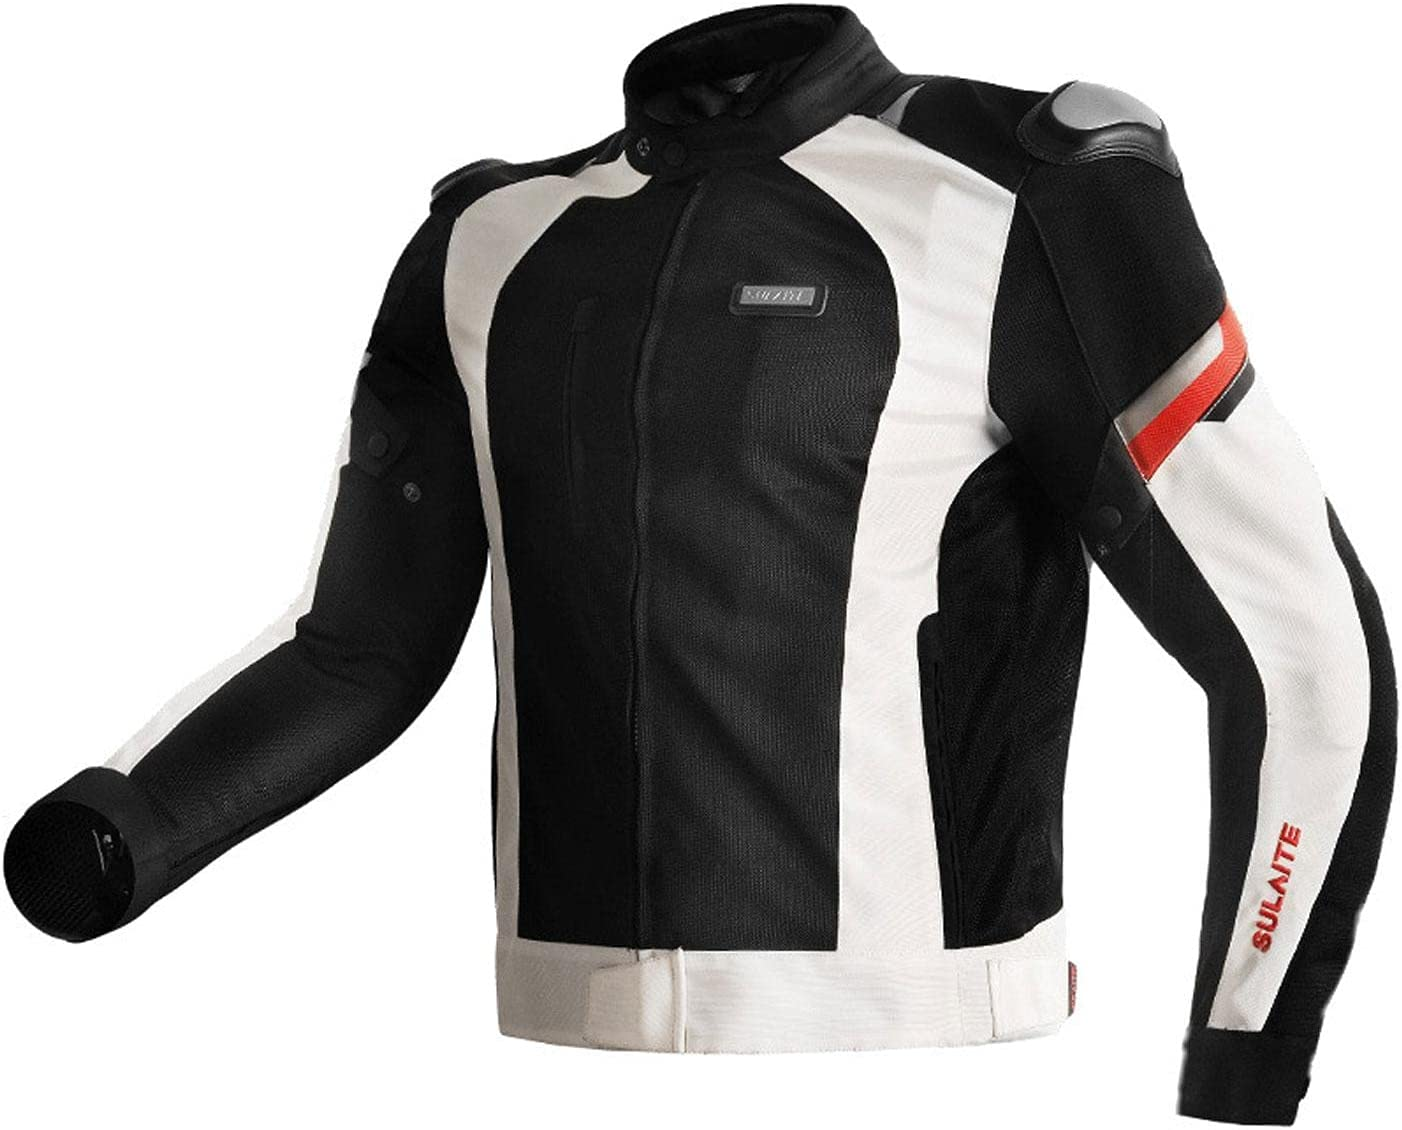 National products Tinello Motorcycle Jacket and Women 4 years warranty for Men Pants